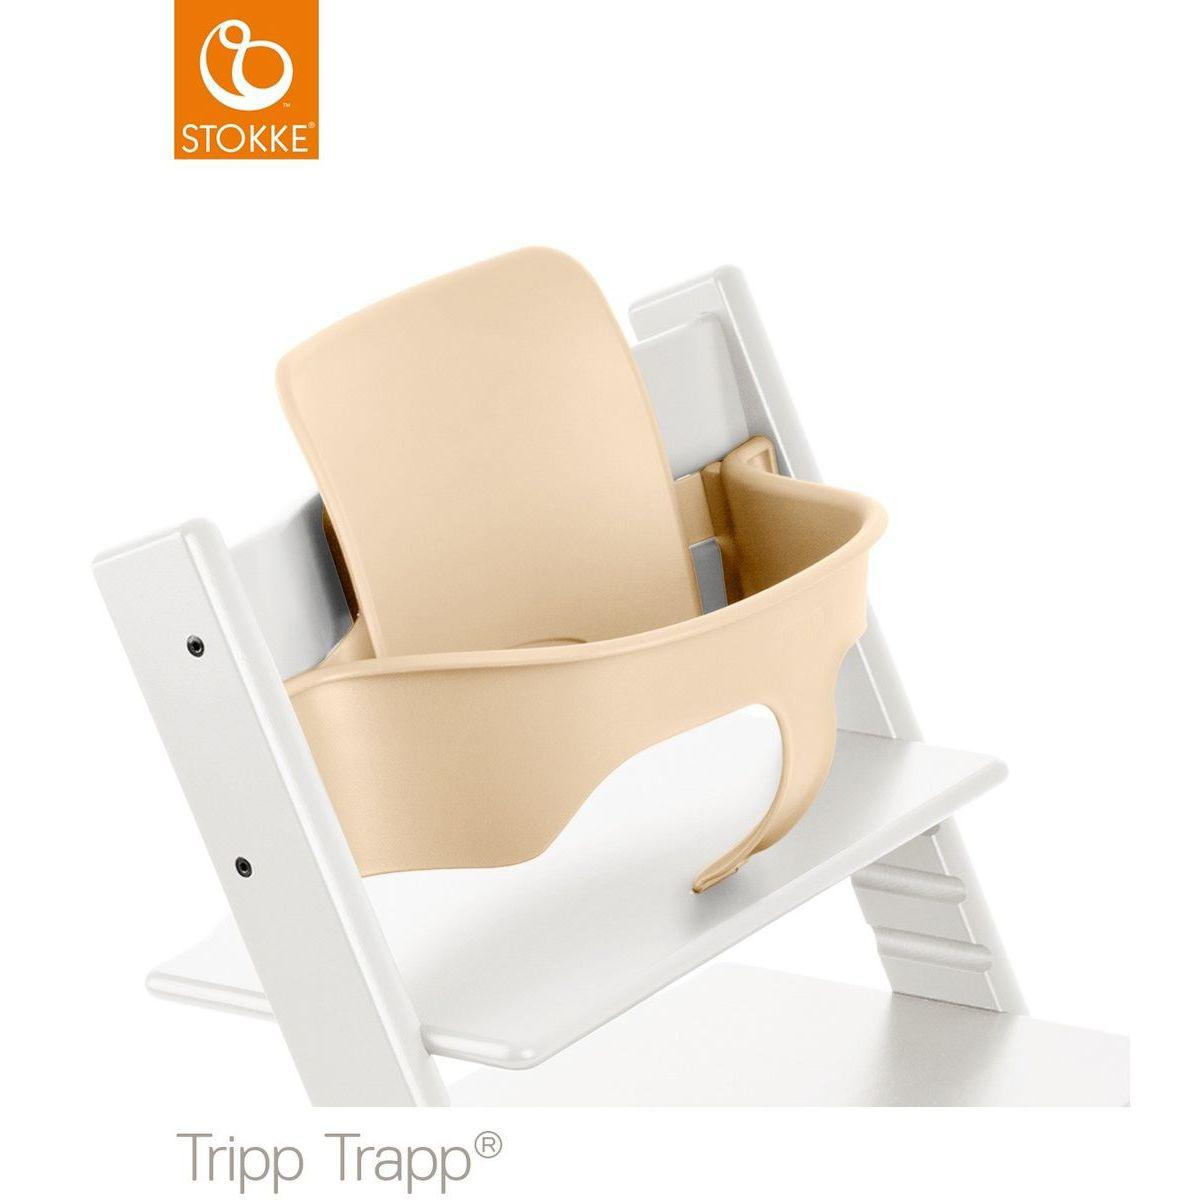 Baby set chaise haute TRIPP TRAPP Stokke naturel